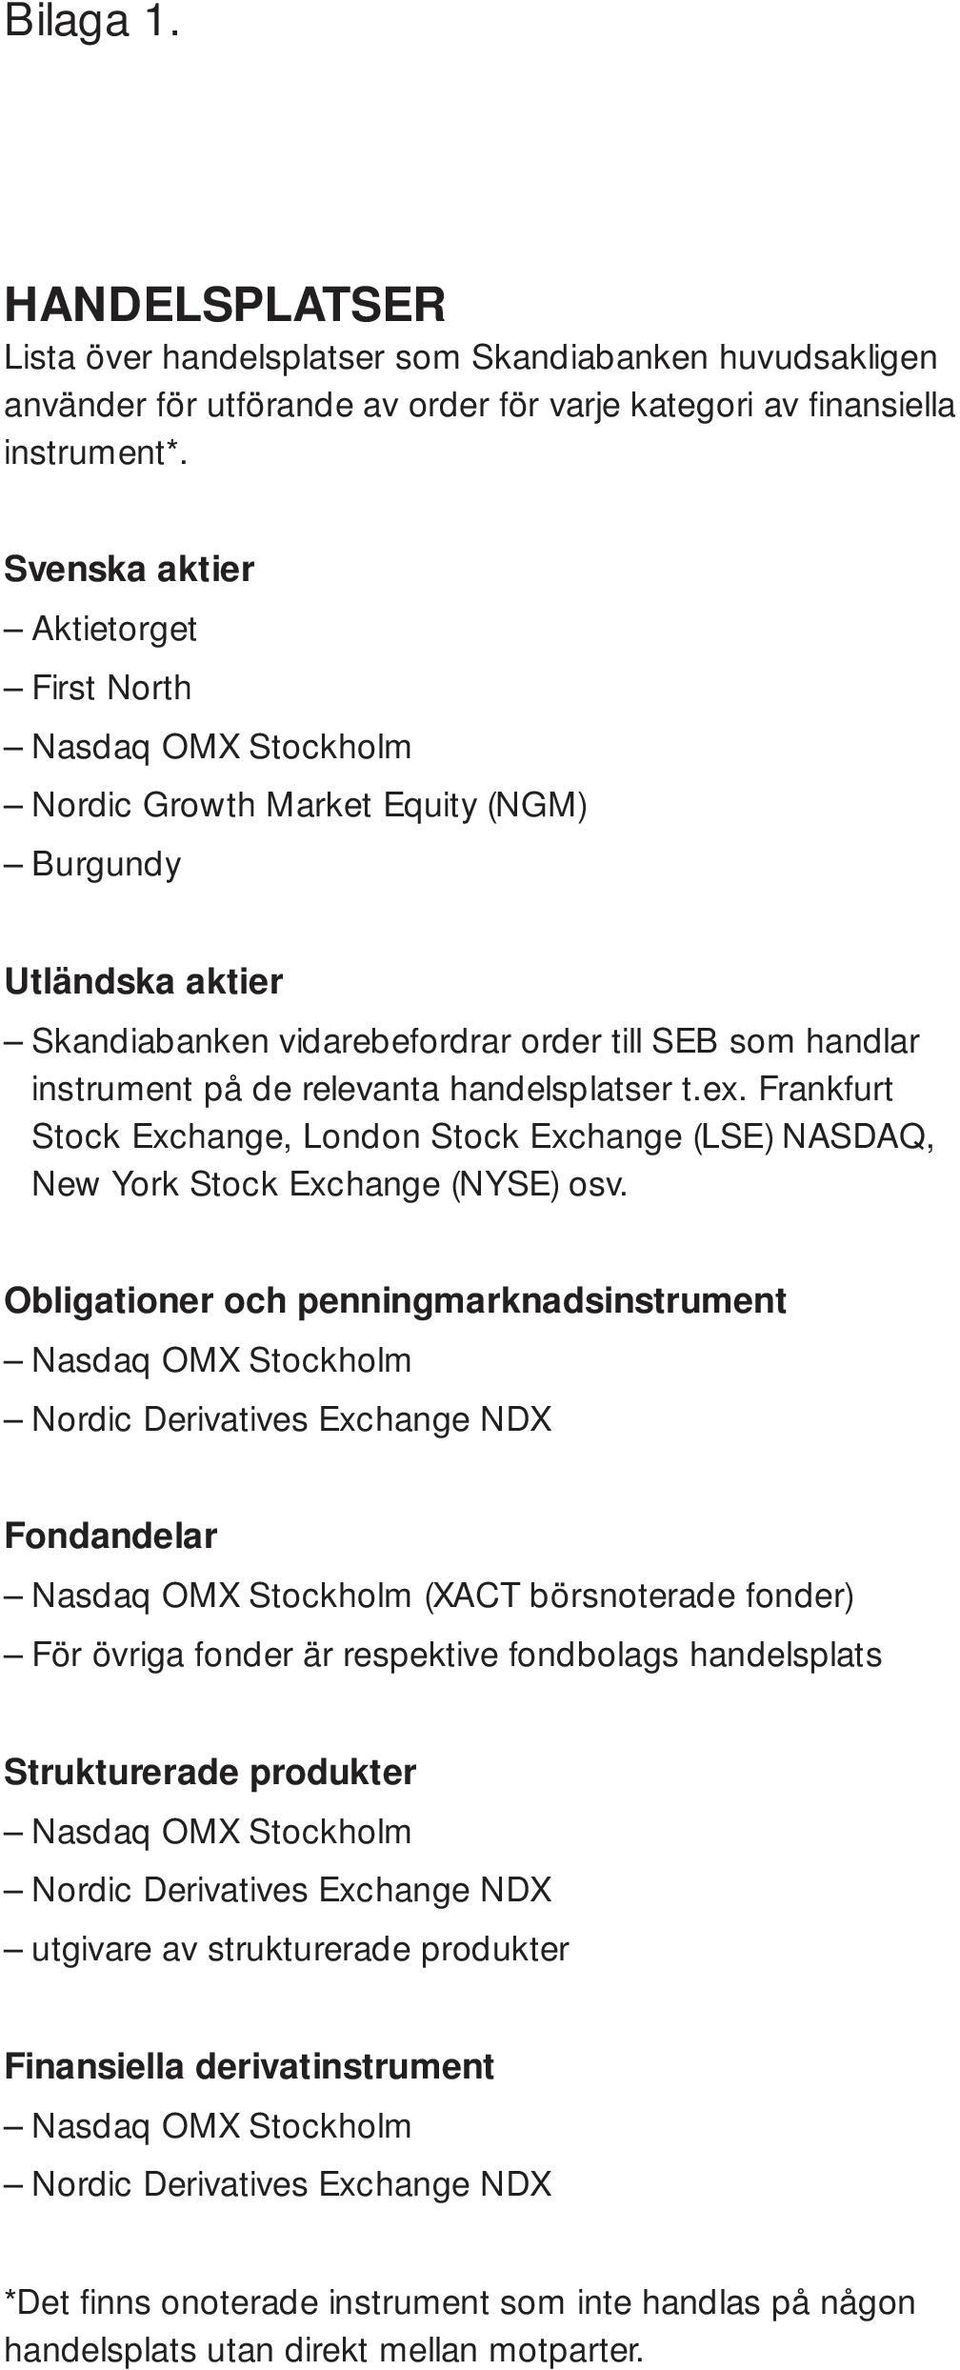 relevanta handelsplatser t.ex. Frankfurt Stock Exchange, London Stock Exchange (LSE) NASDAQ, New York Stock Exchange (NYSE) osv.